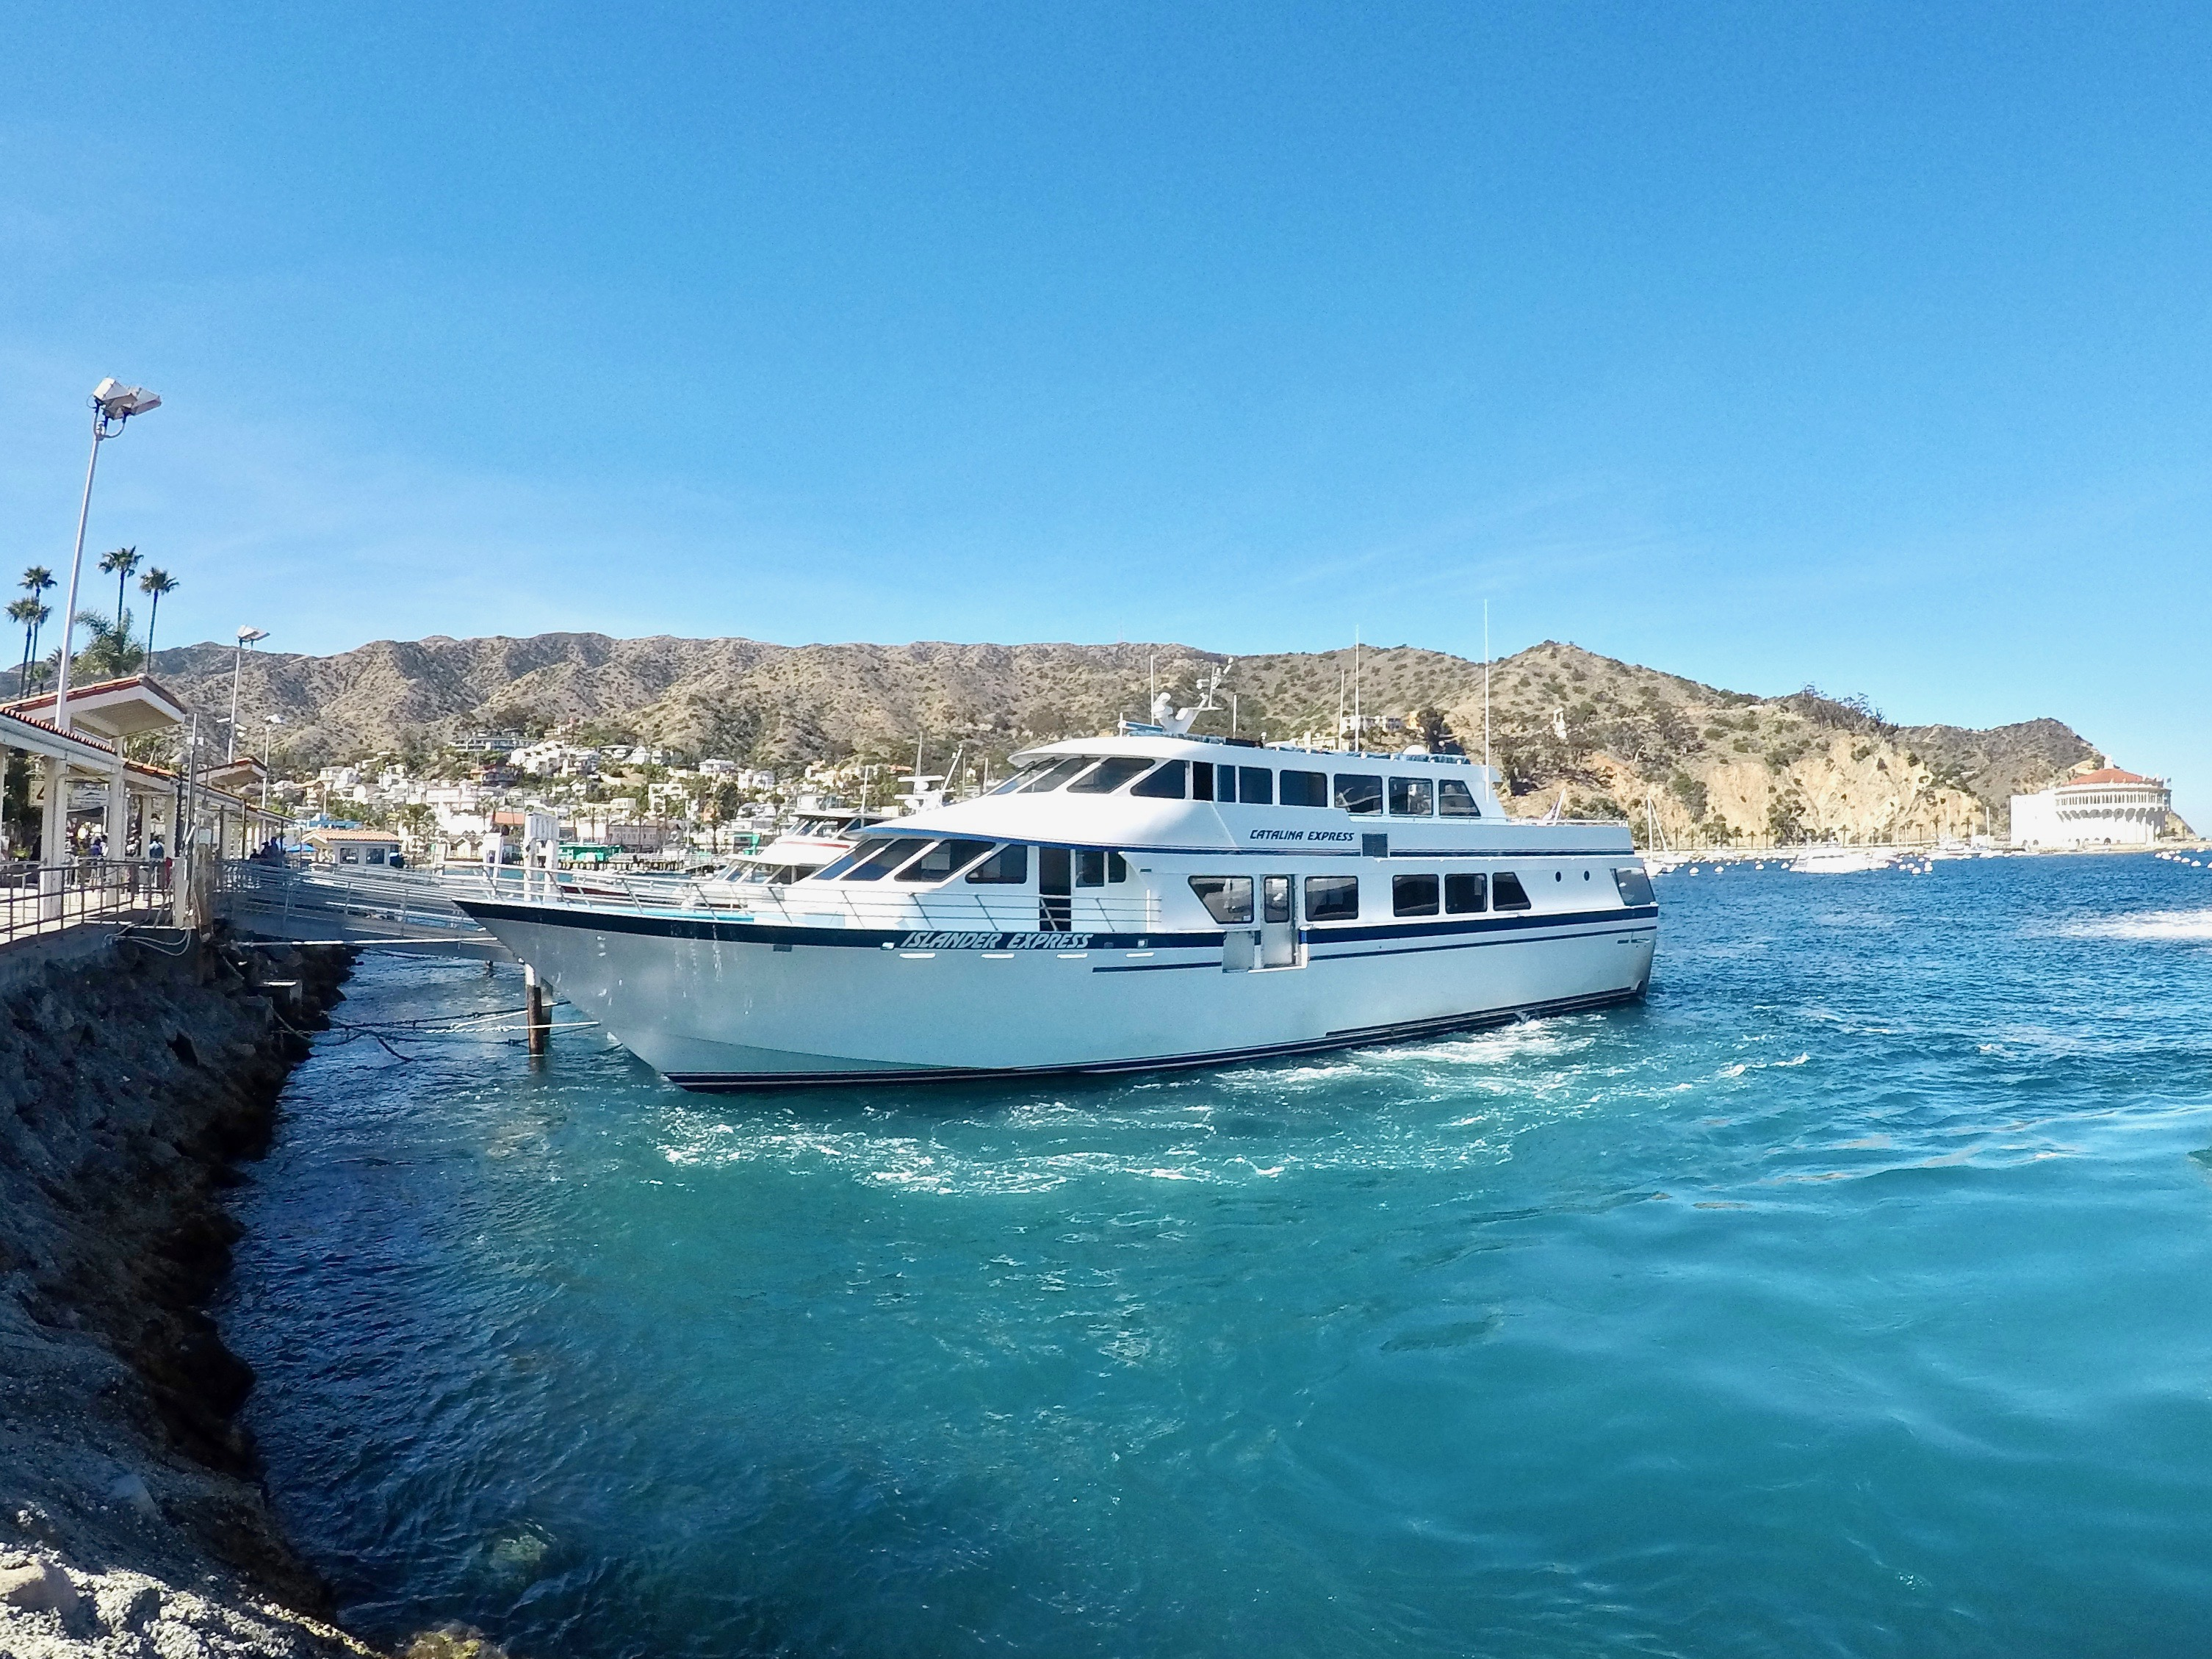 Things to do in Catalina Island Catalina Express